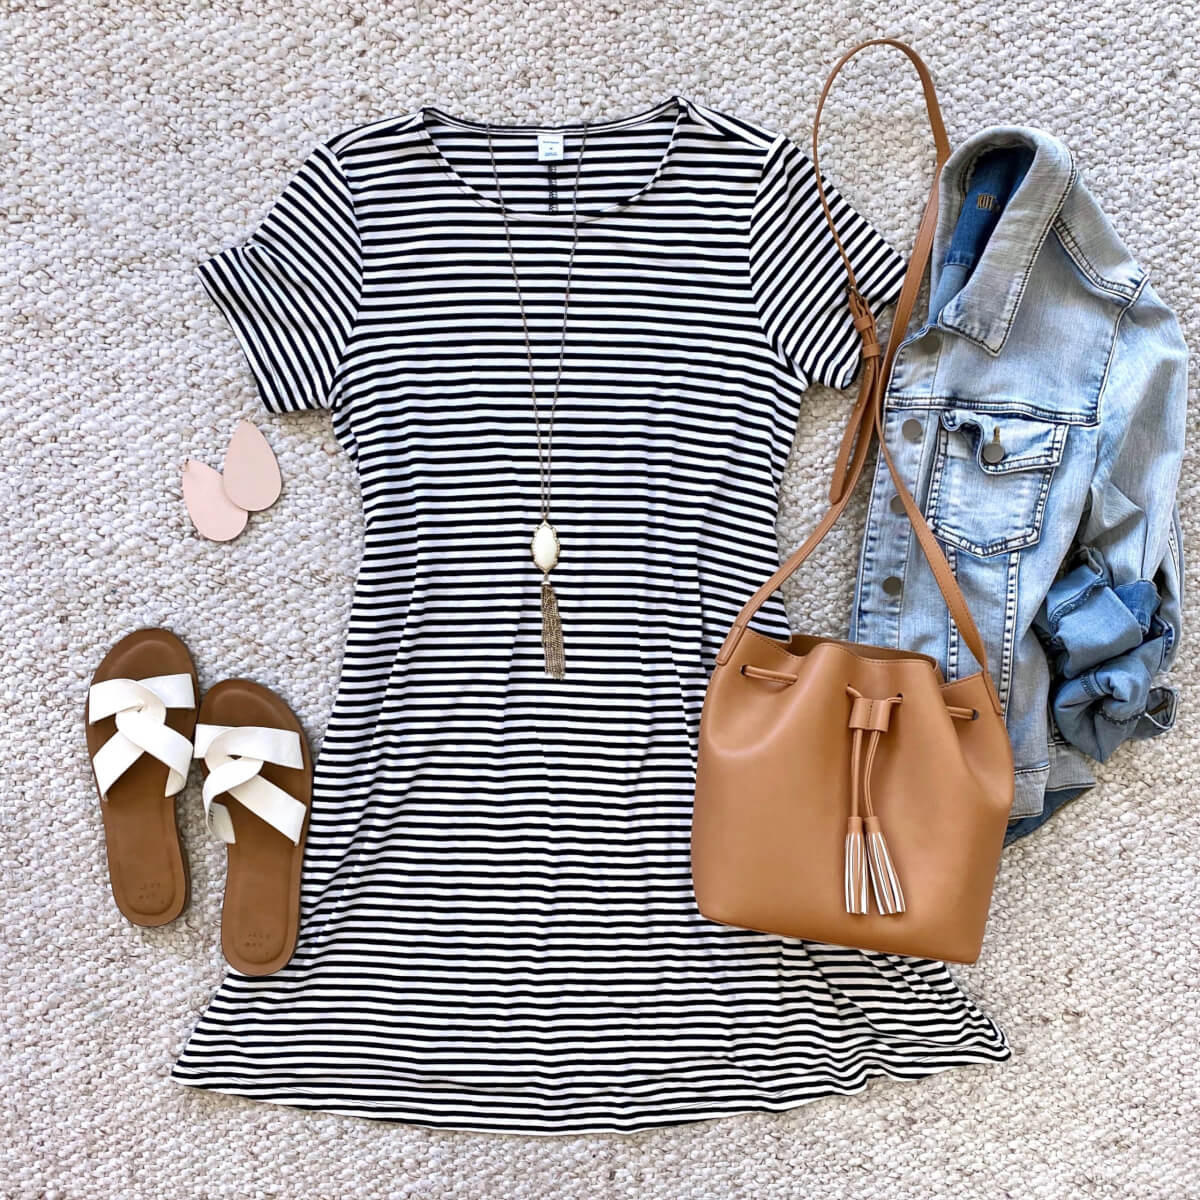 denim jacket outfit: denim jacket + striped dress + white sandals + blush earrings + pendant necklace + tan bag flat lay